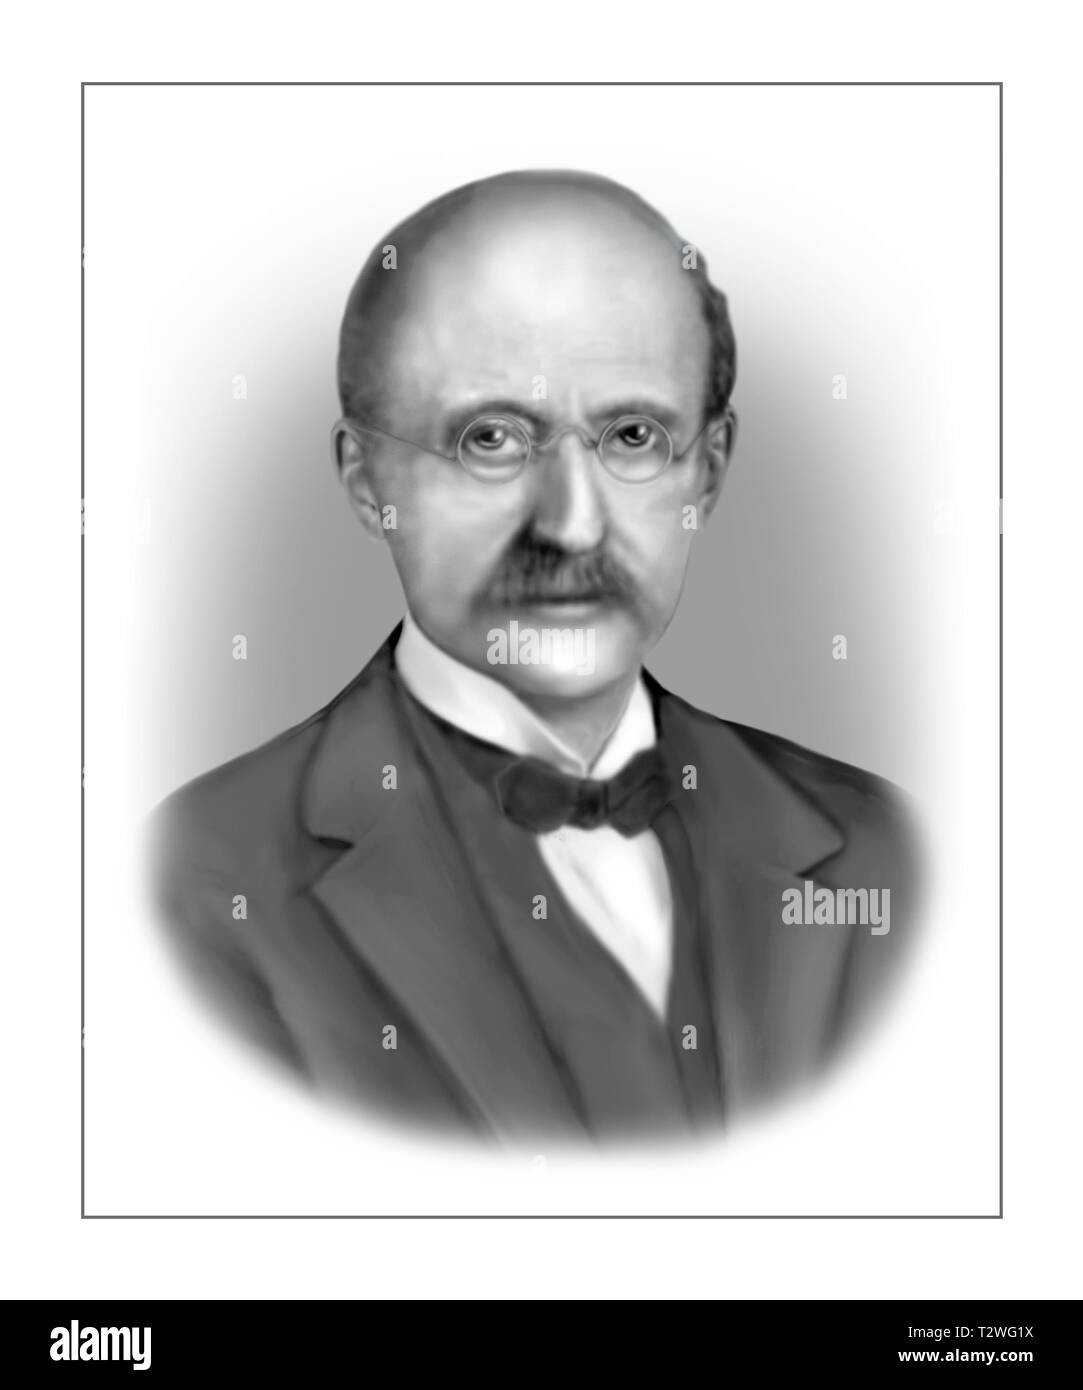 Max Planck 1858-1947 German Theoretical Physicist - Stock Image